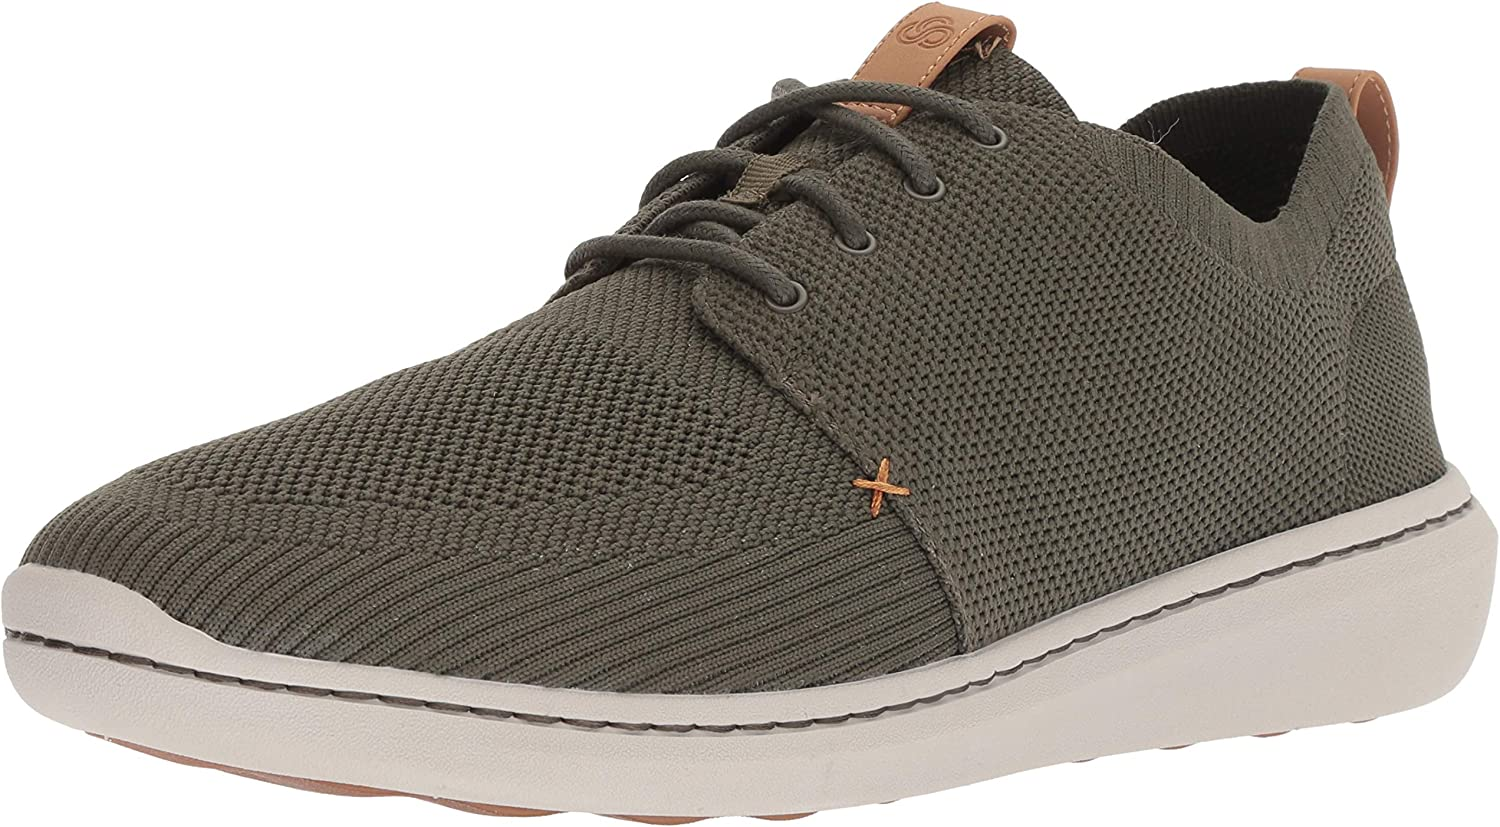 Clarks Men's Step Urban Mix Sneaker